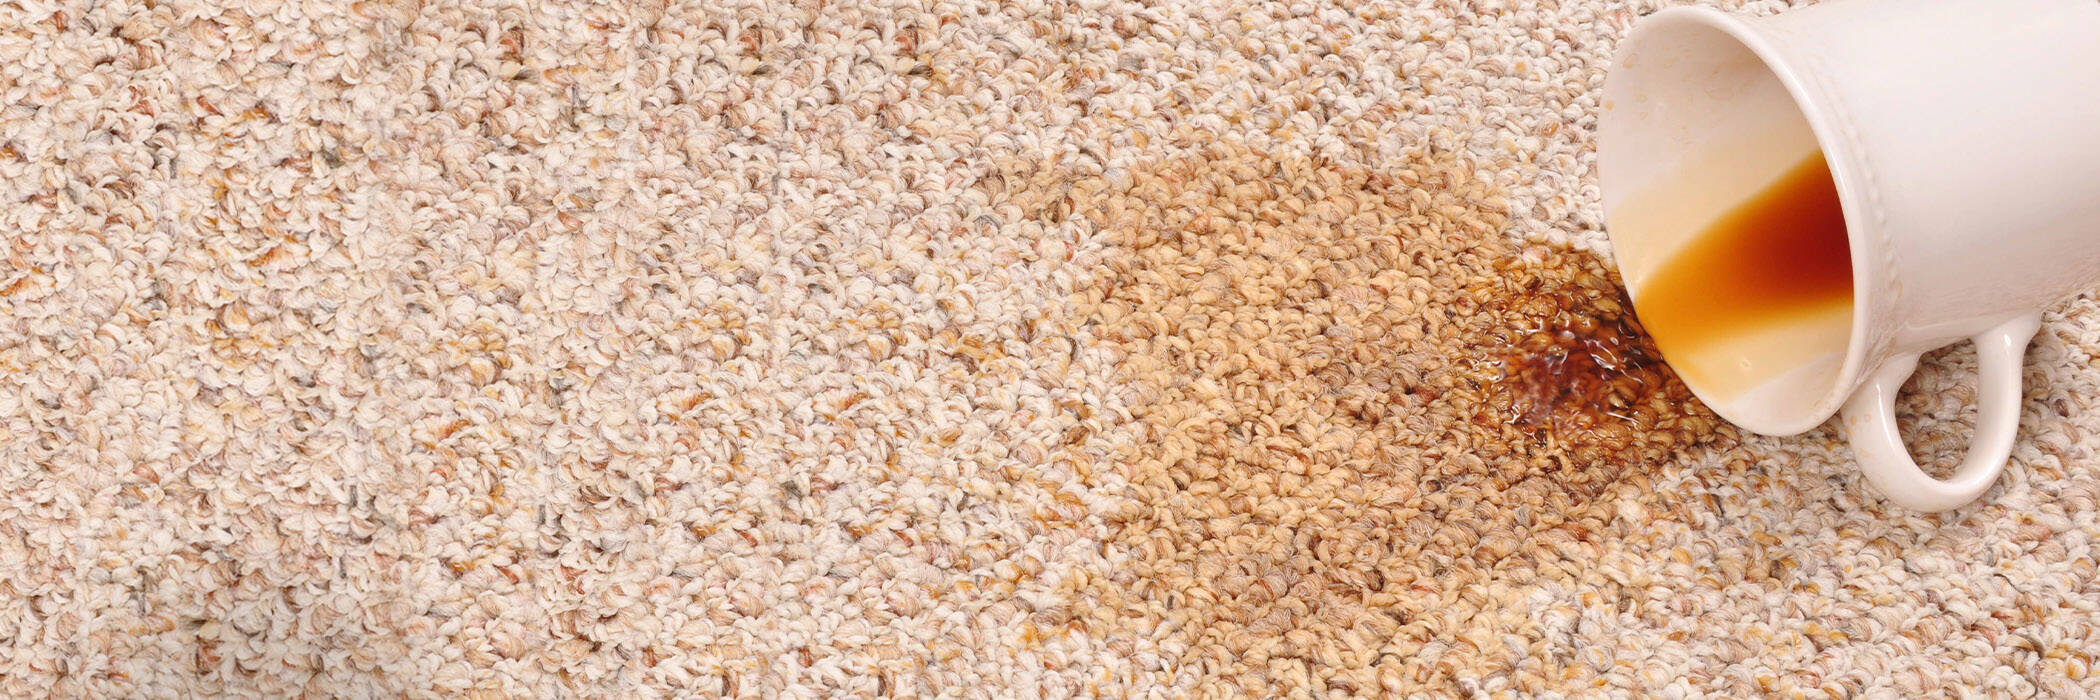 Close-up of coffee spilling on carpet.